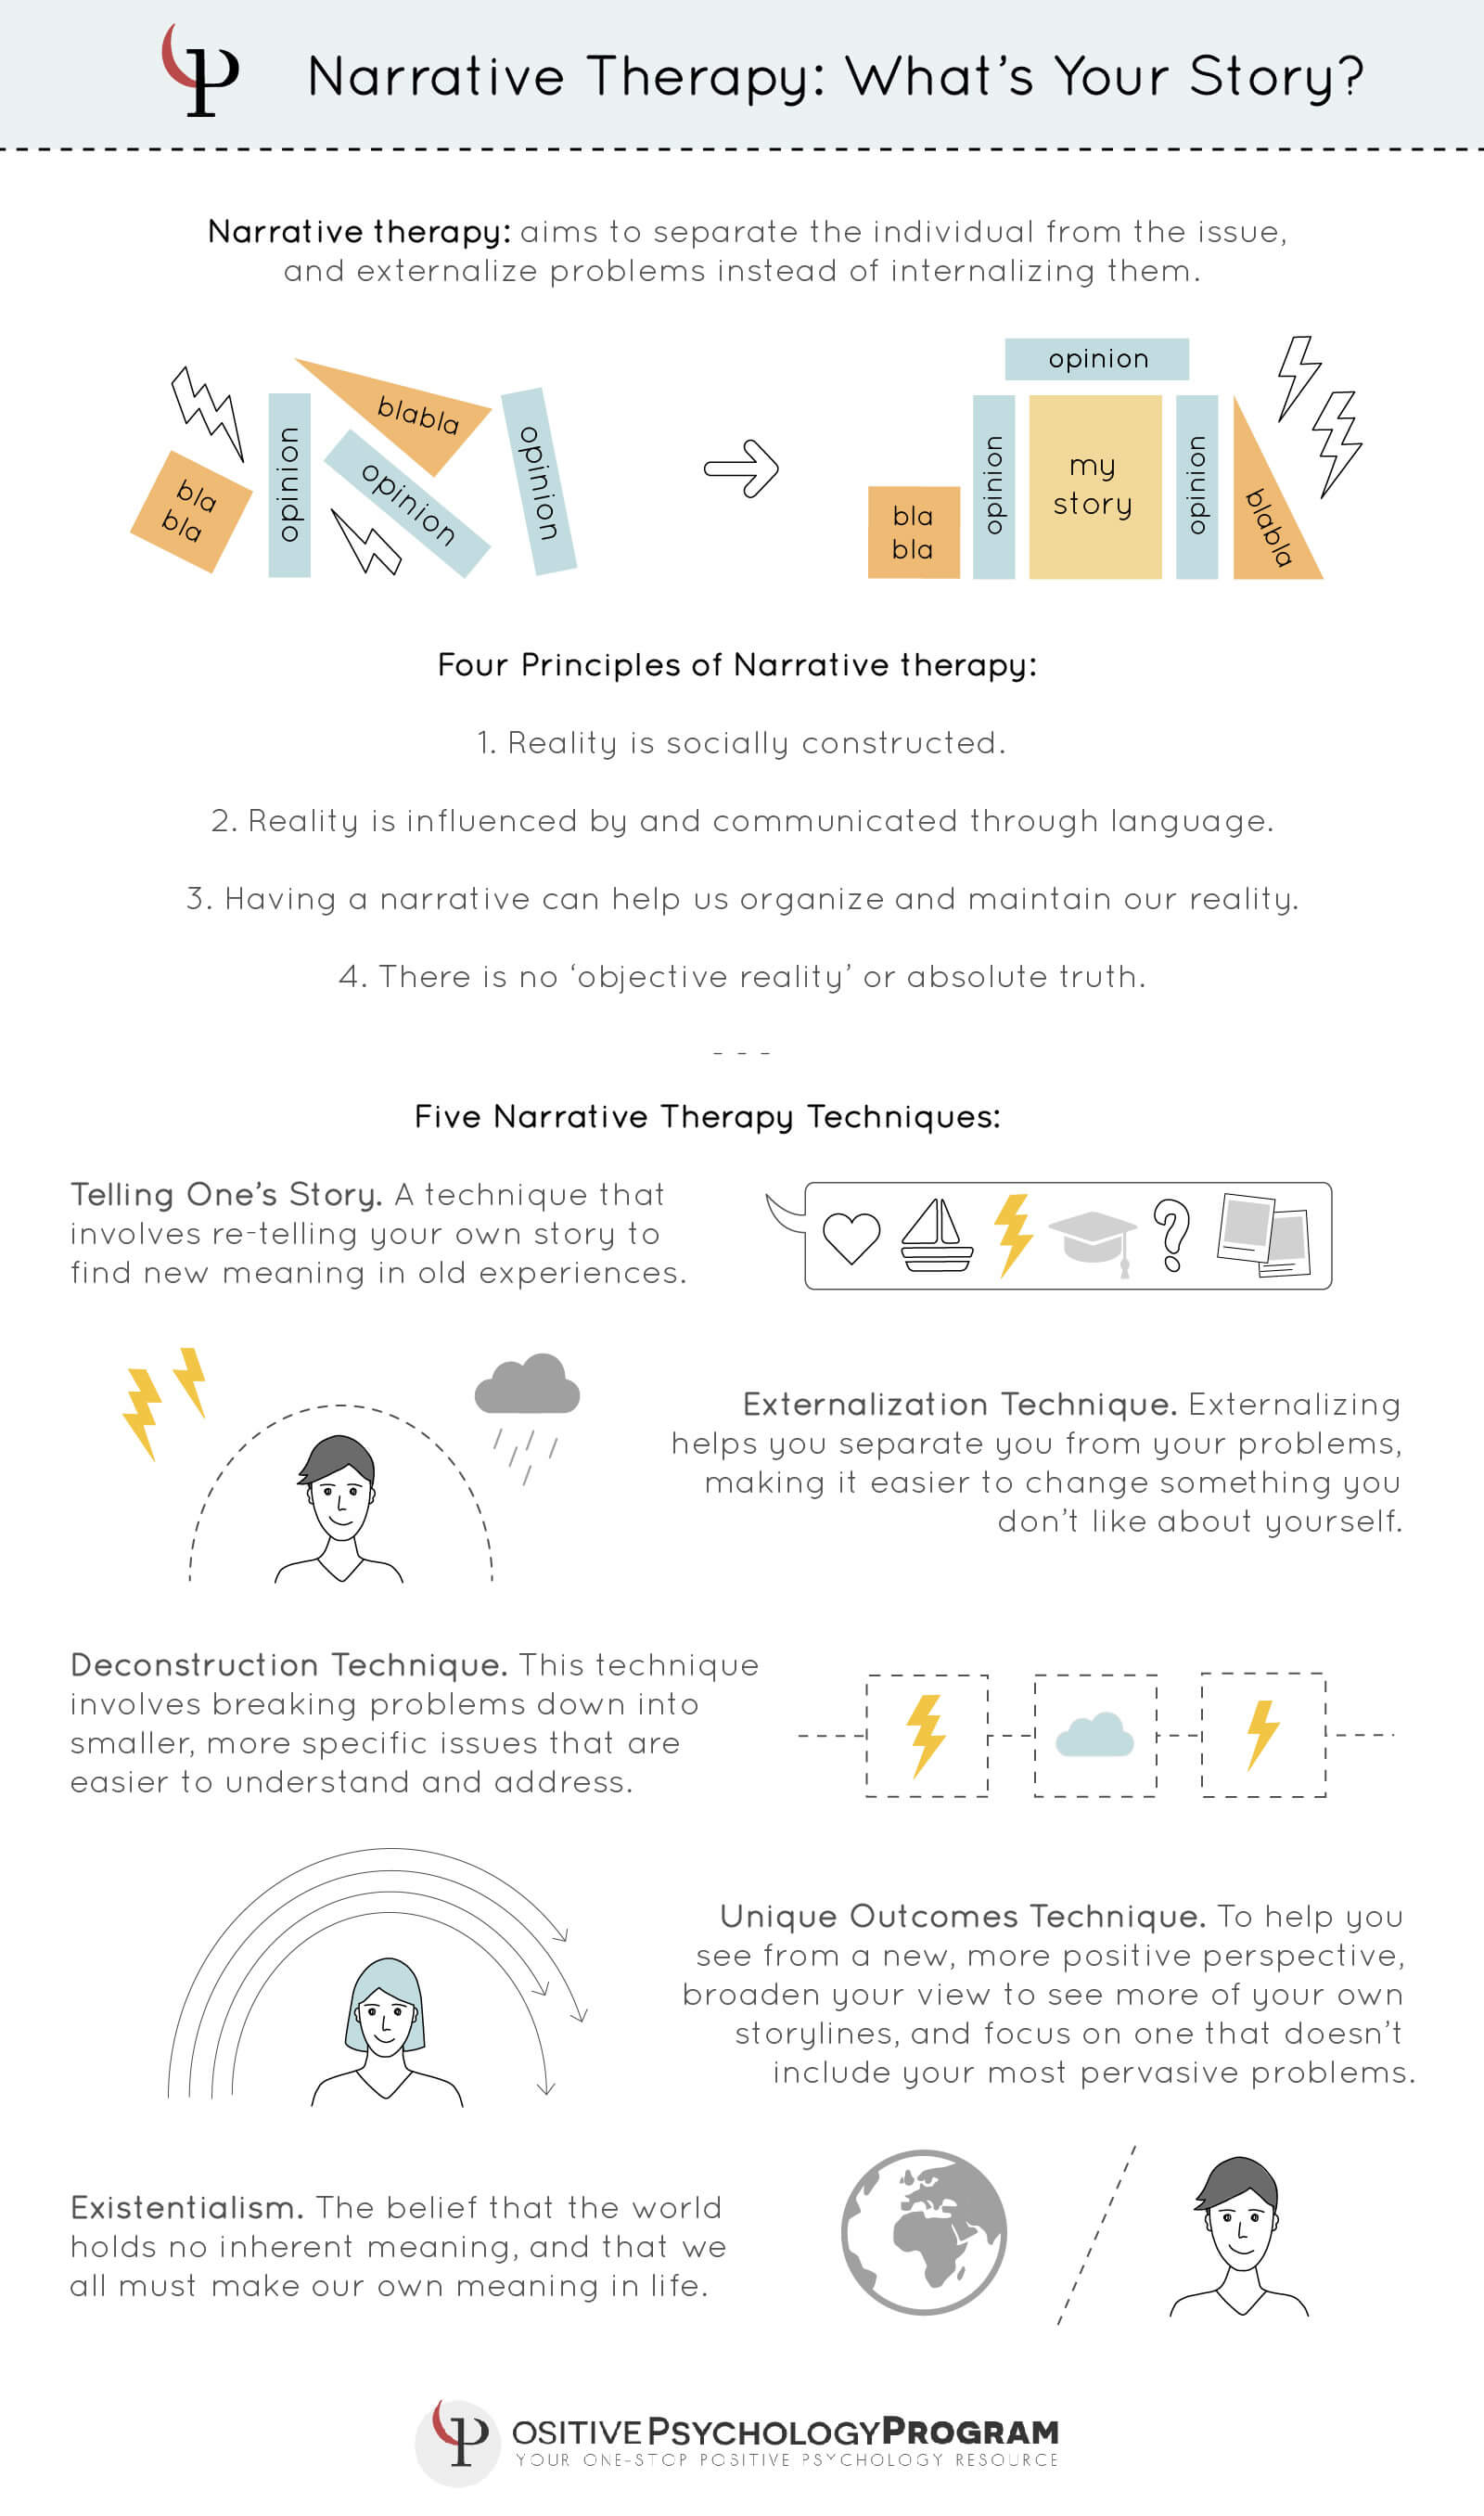 narrative therapy What's your story? infographic